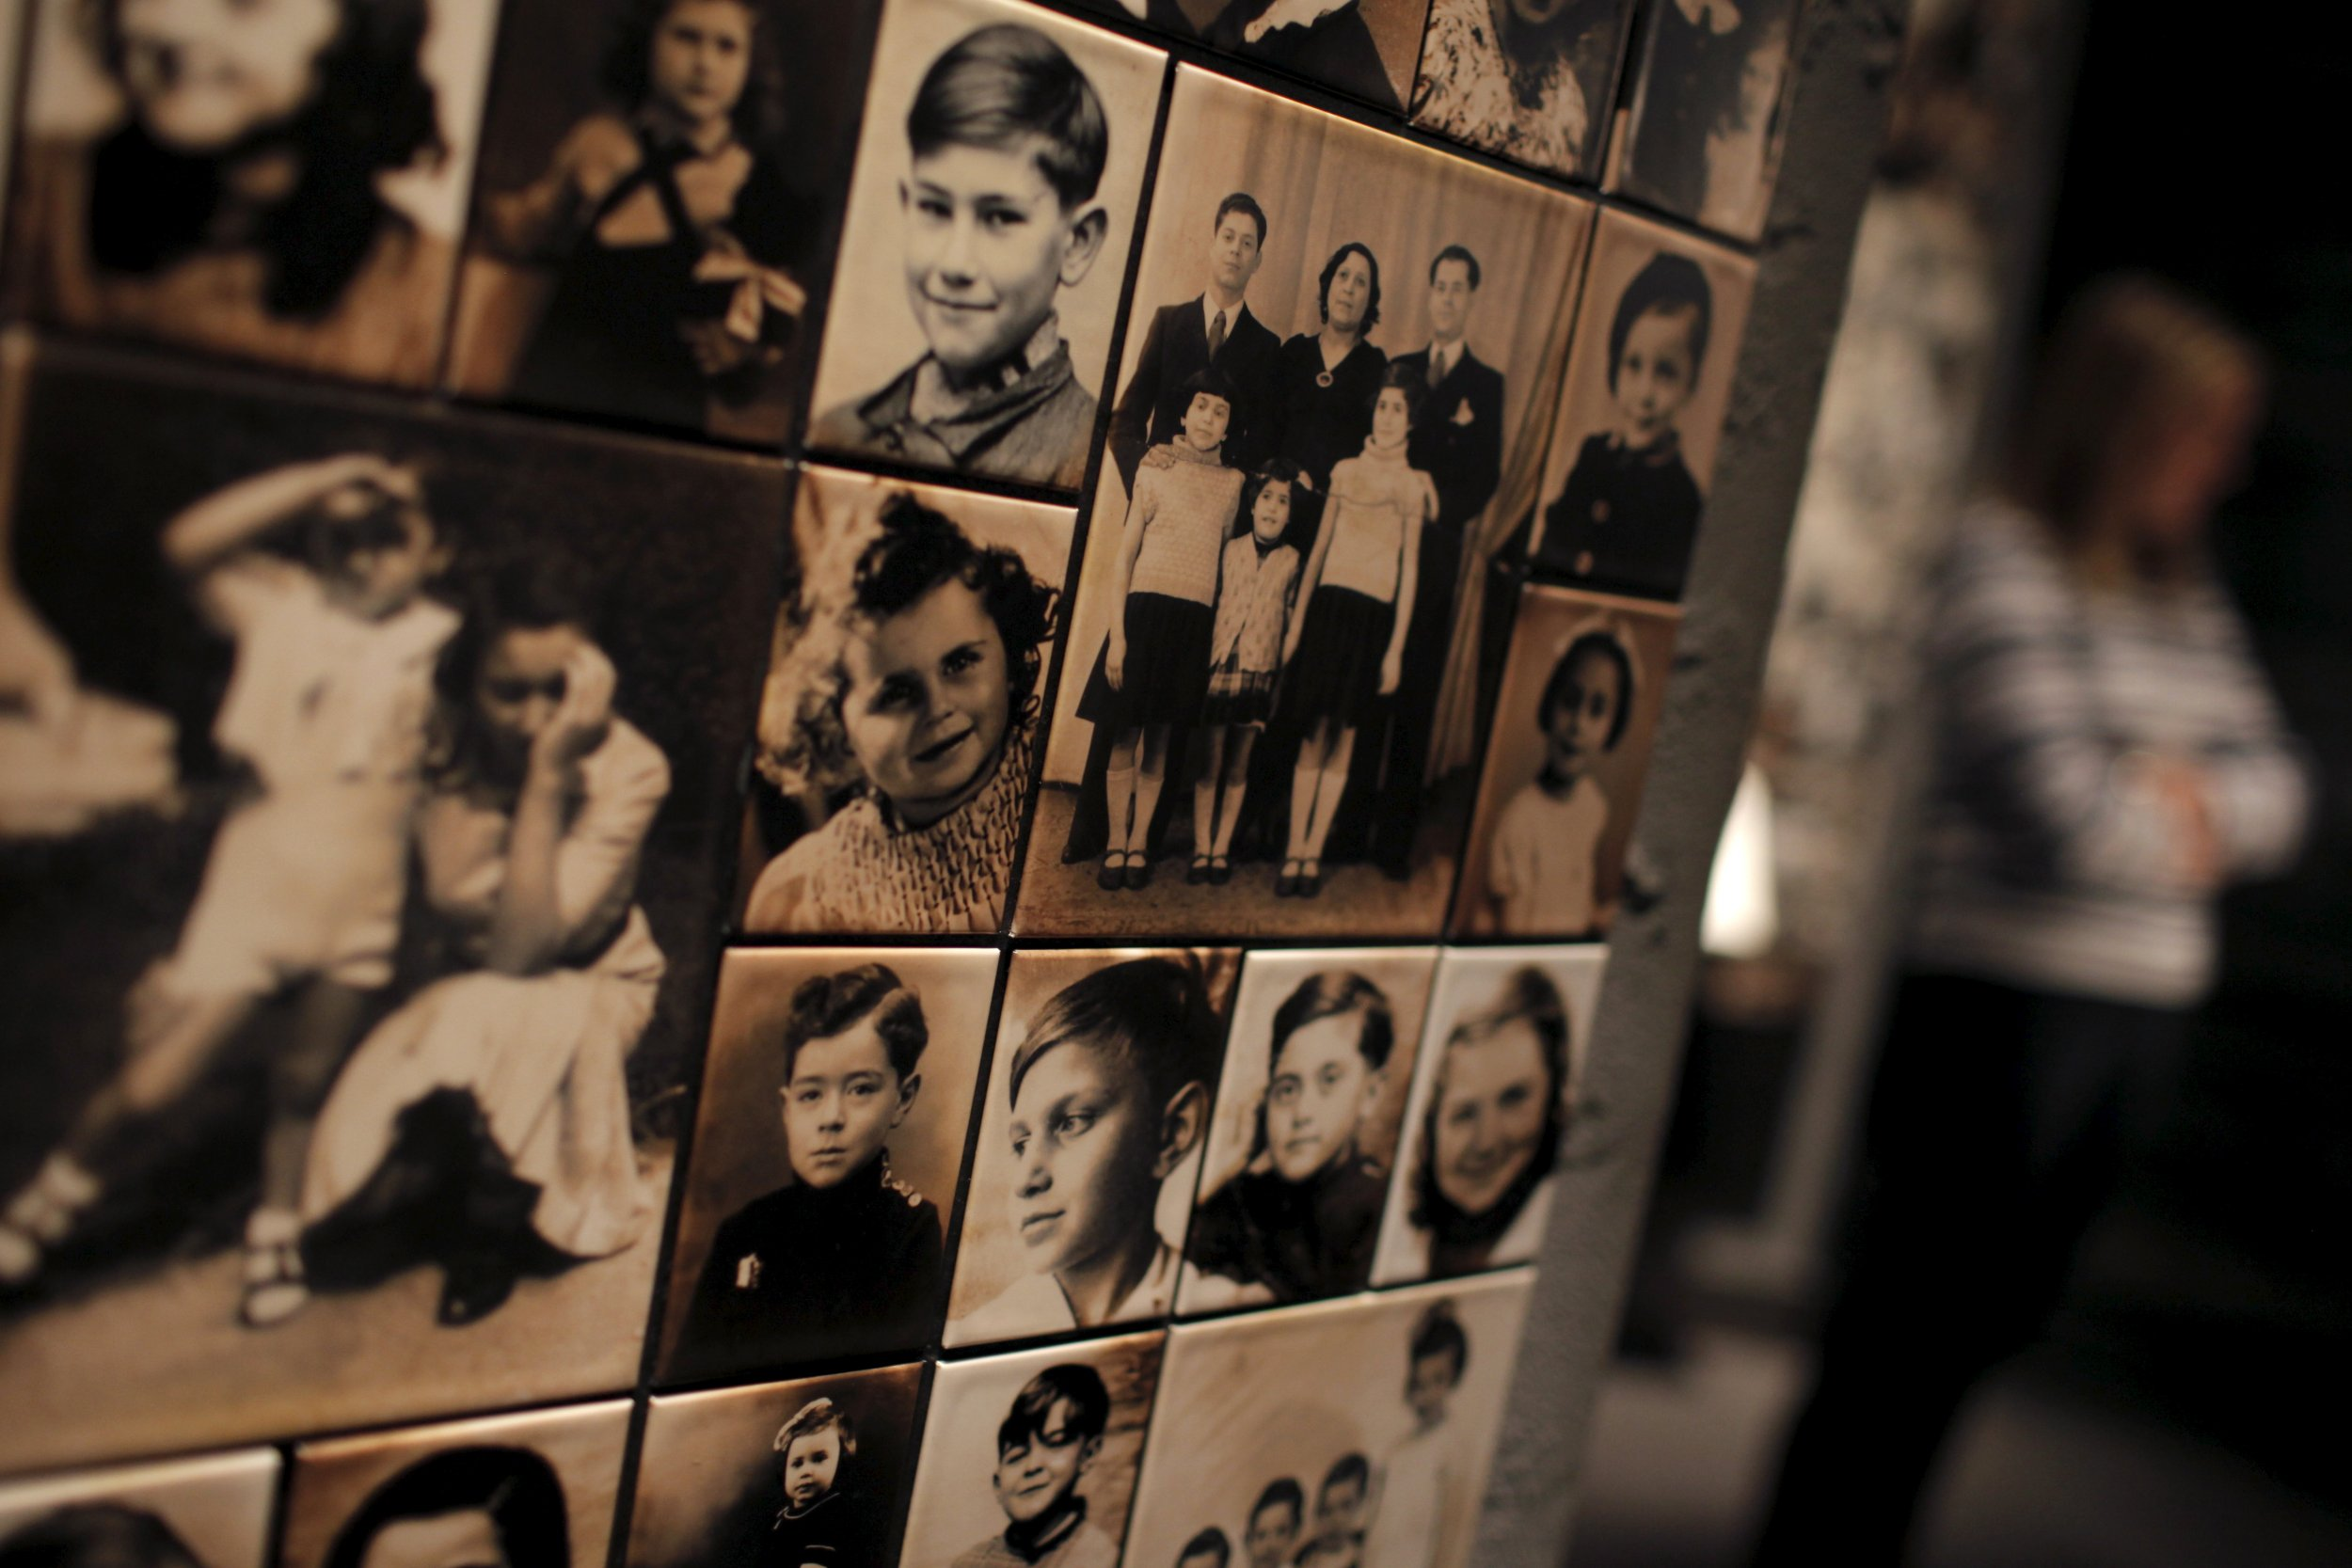 5-1-17 Holocaust and genocide education